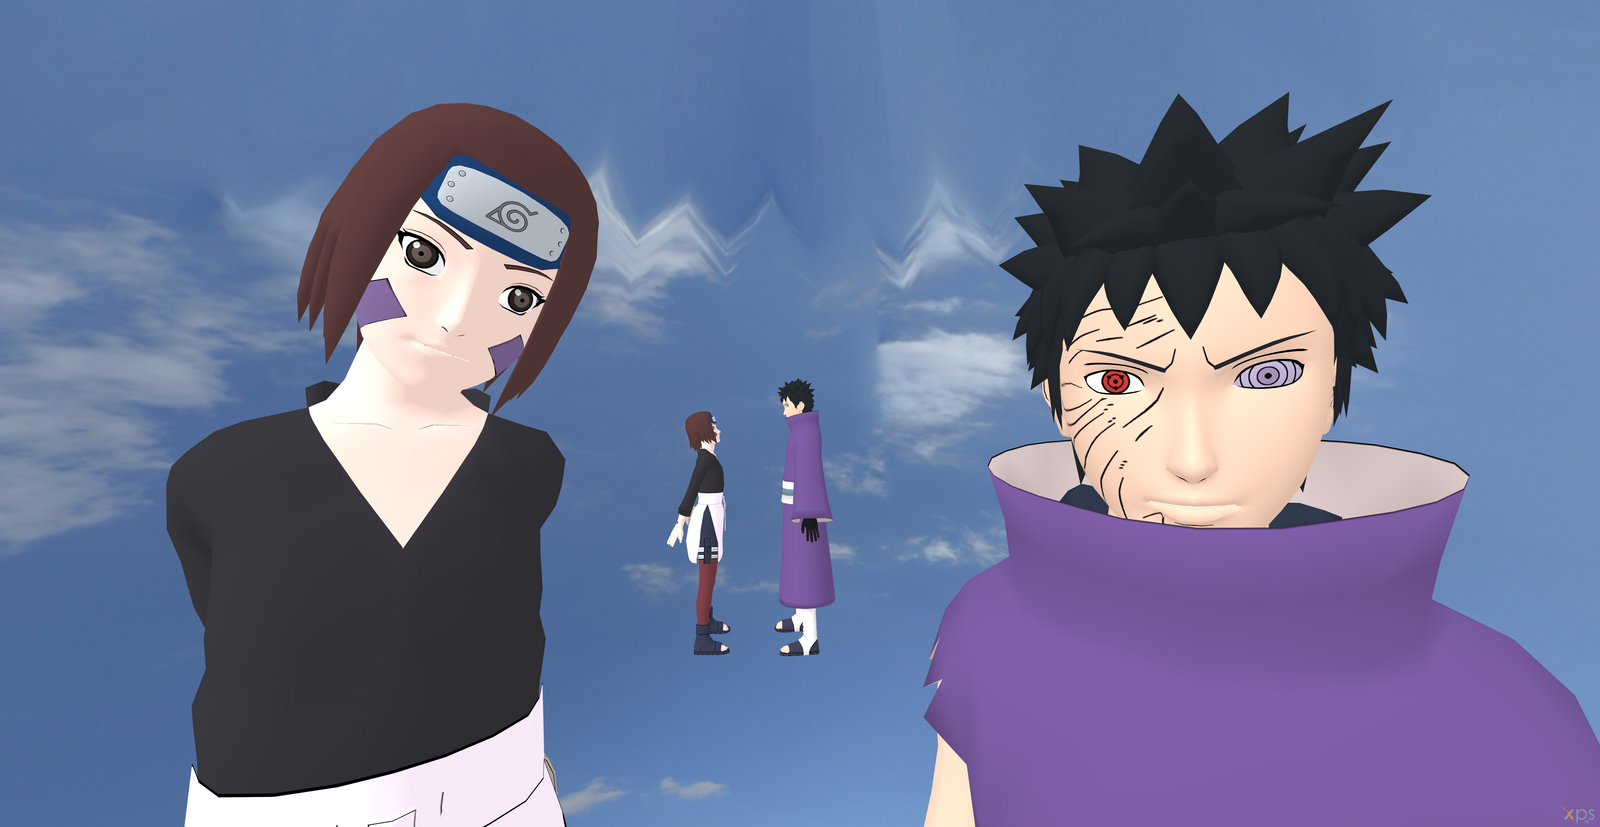 obito and rin meet again someday